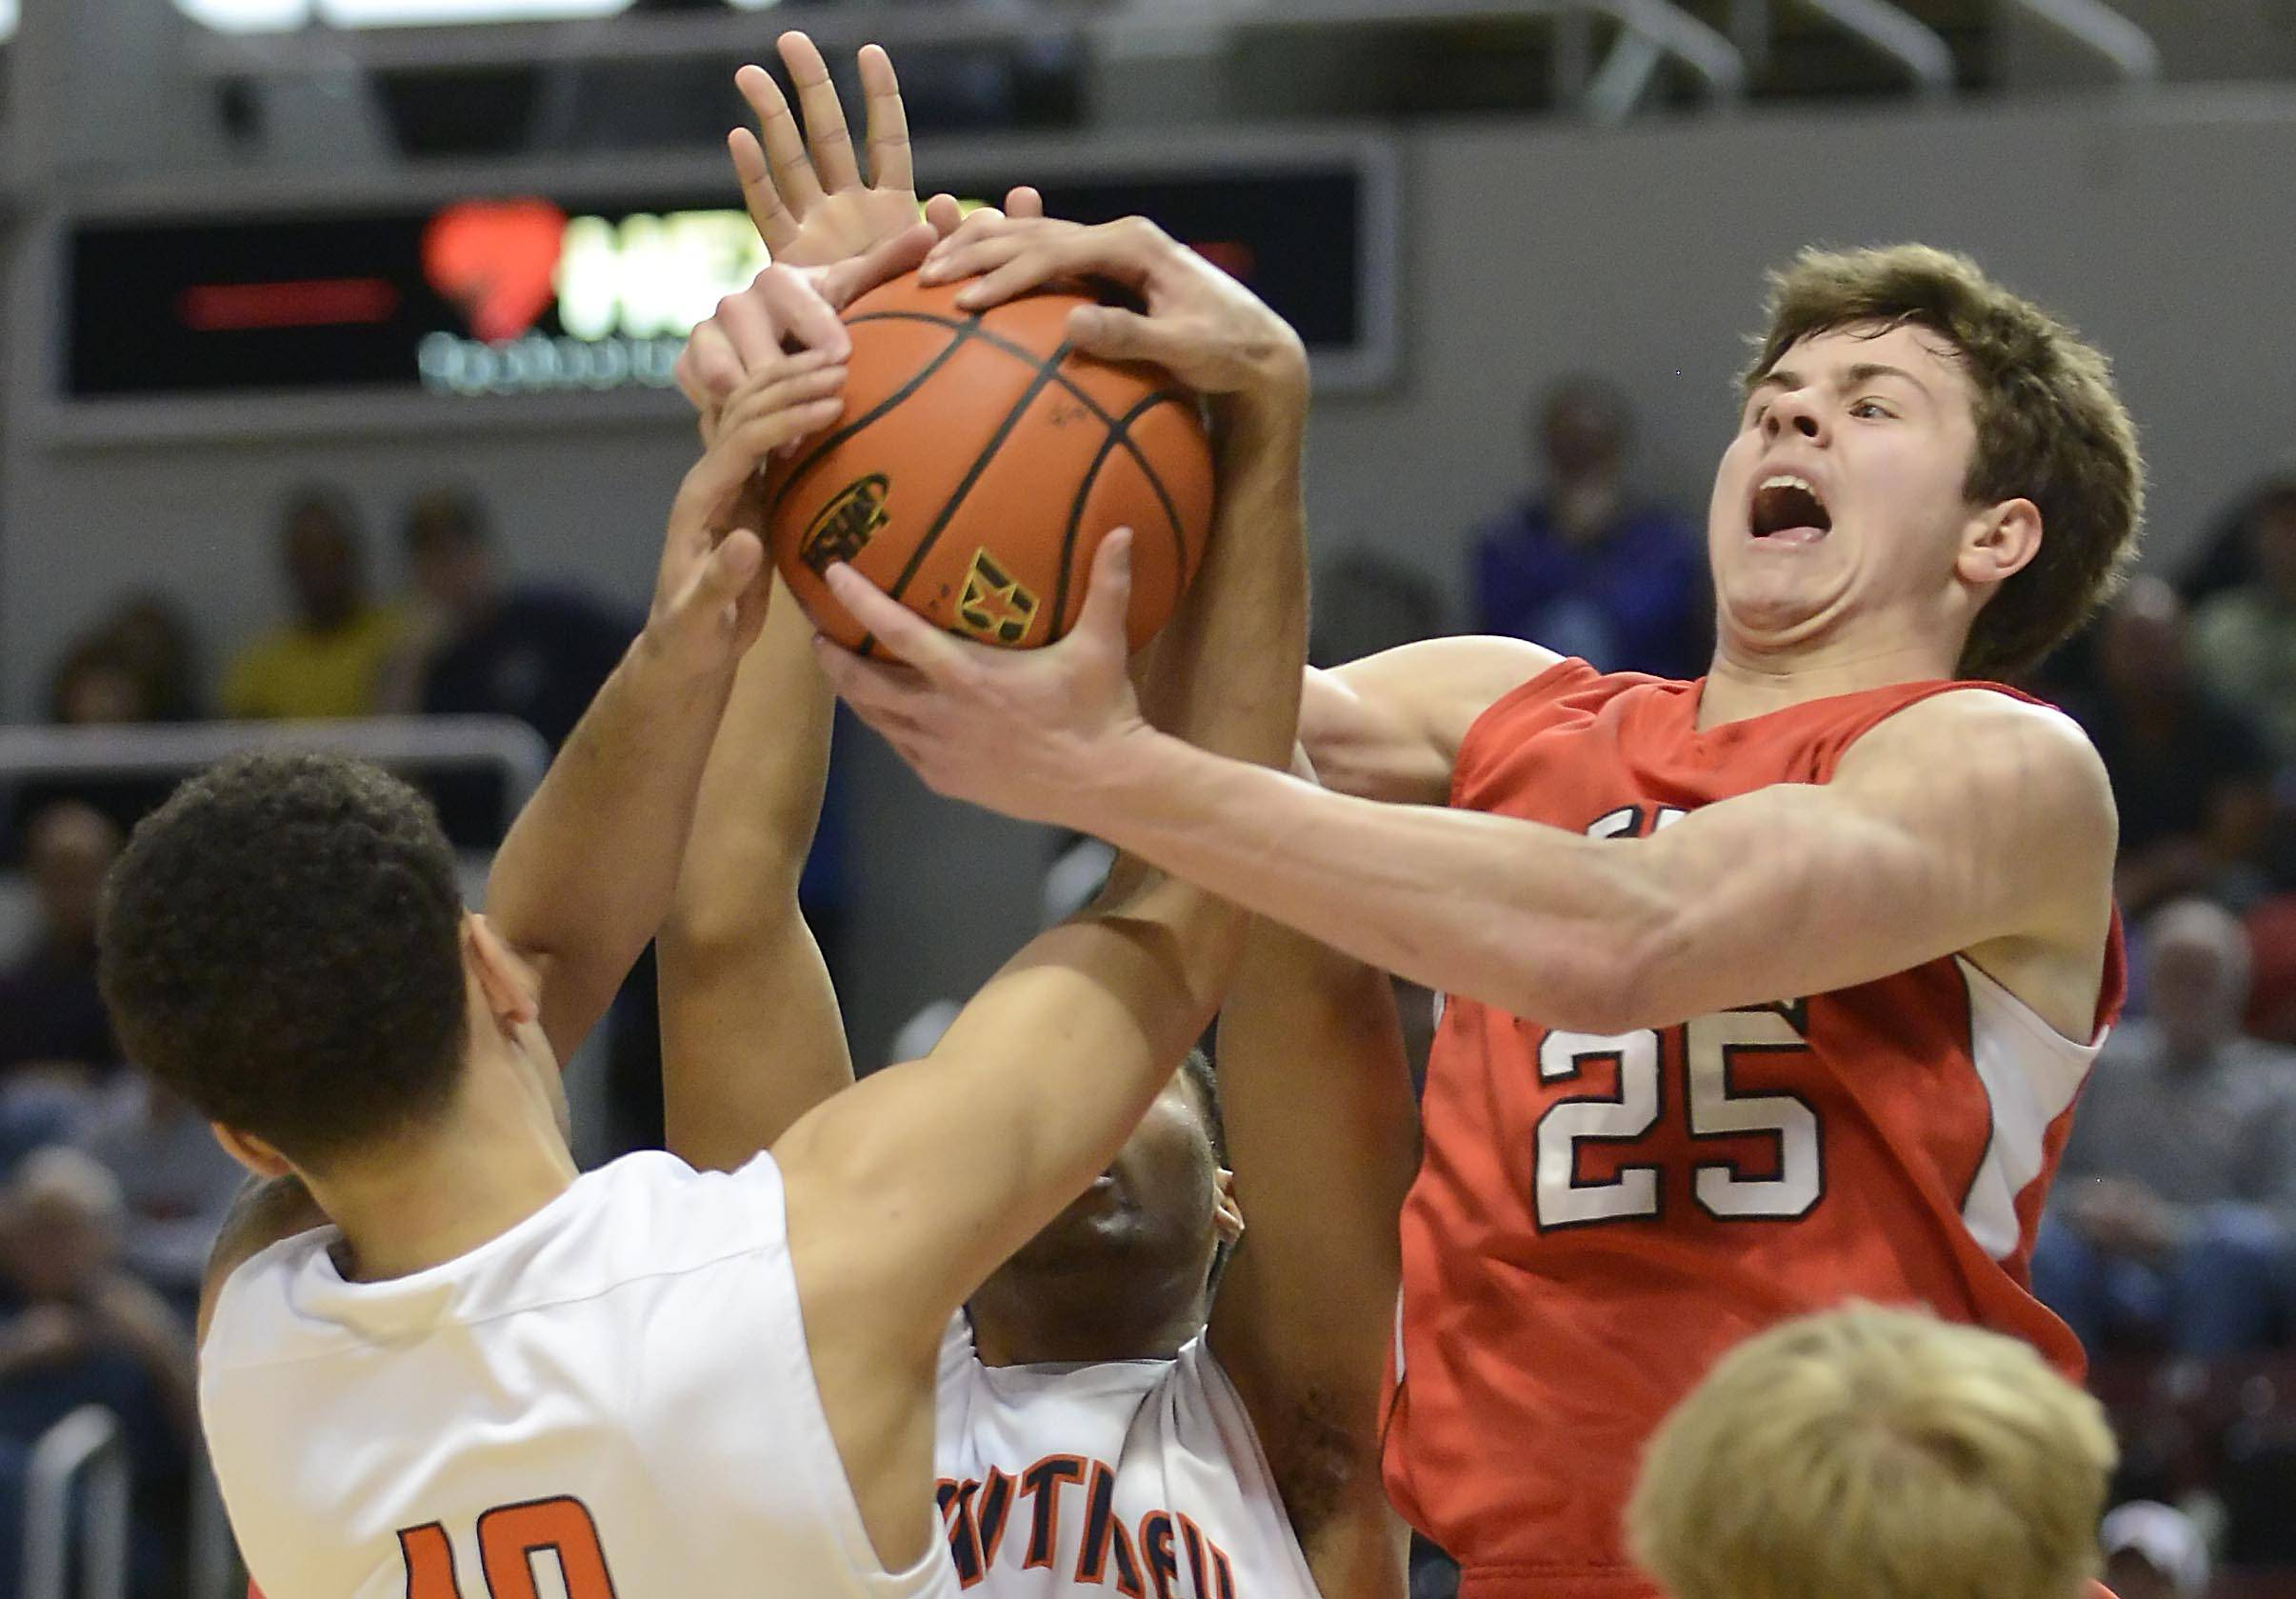 Images: Class 4A State Championship Boys Basketball